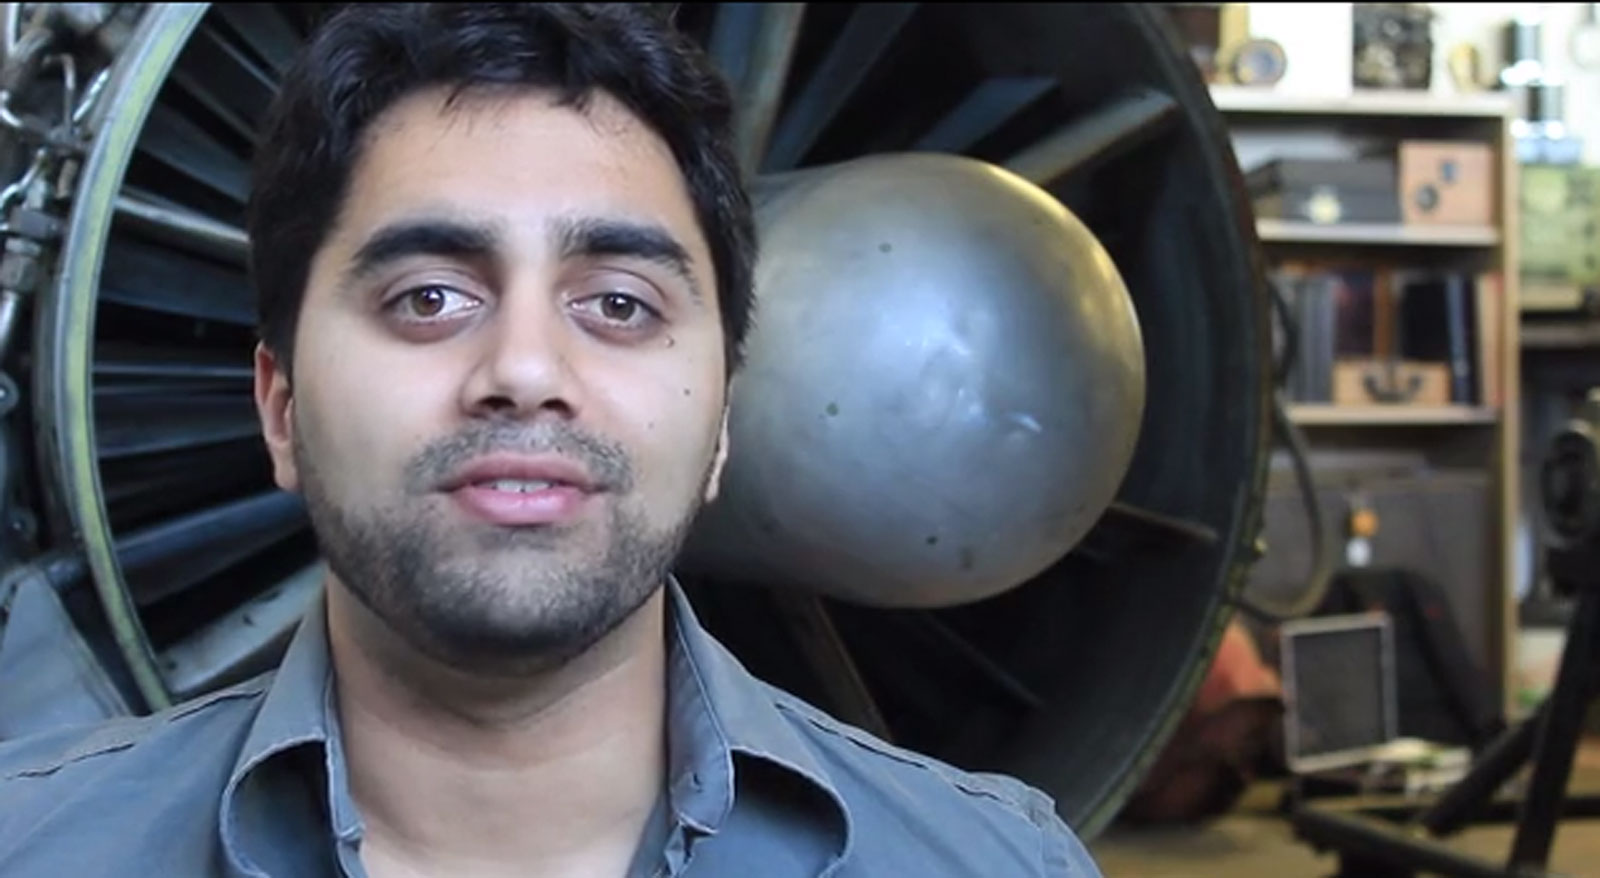 Photo from Kunal Dovedy's Kickstarter video. https://www.kunaldovedy.com/